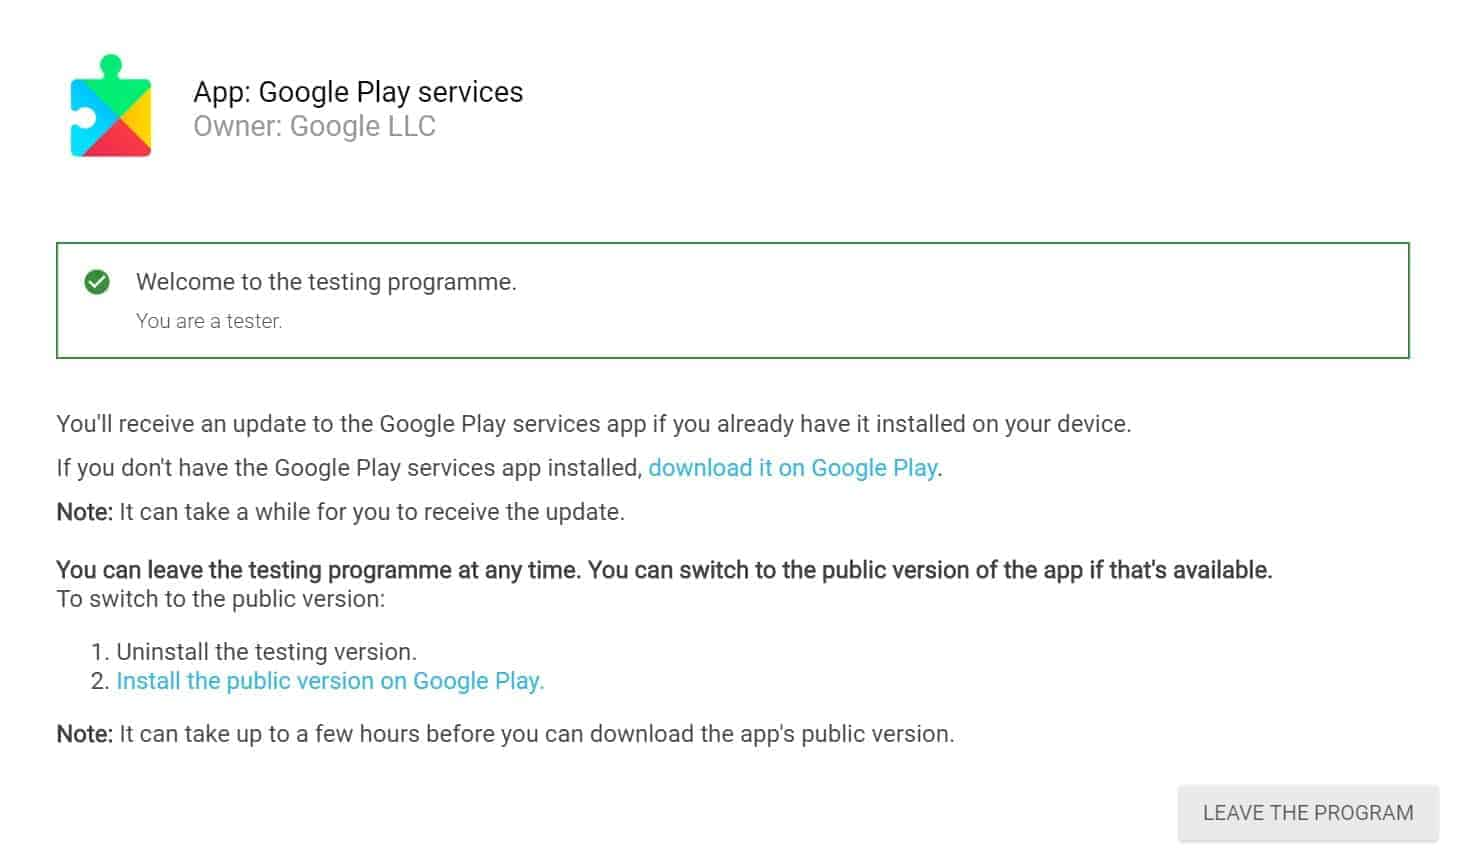 Les services Google Play quittent la version bêta